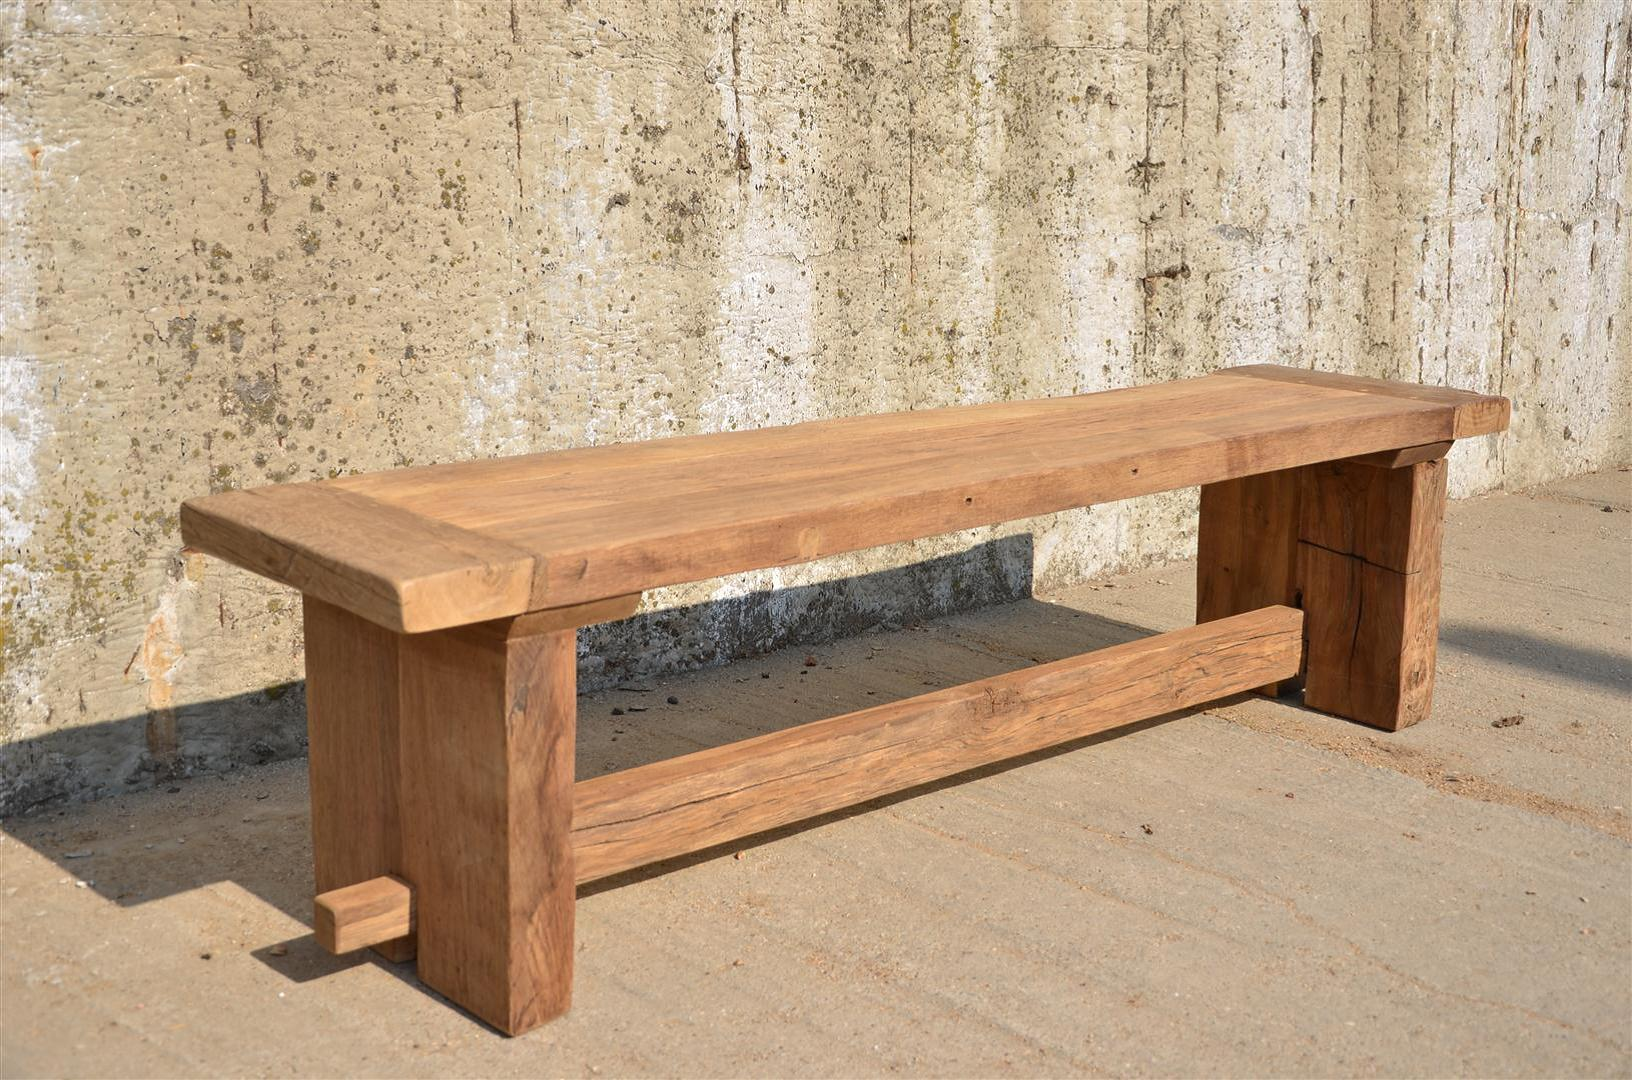 Brand spanking new limited edition reclaimed wood Oak bench